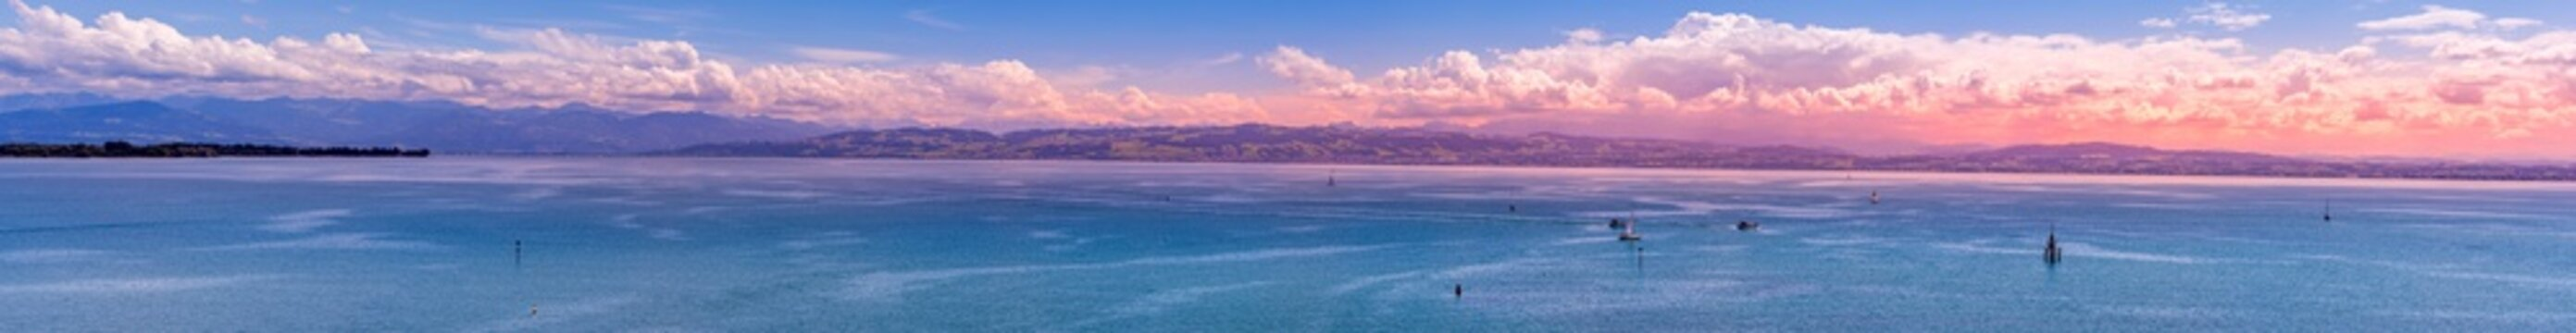 Lake Constance panorama with a view of the Swiss Alps